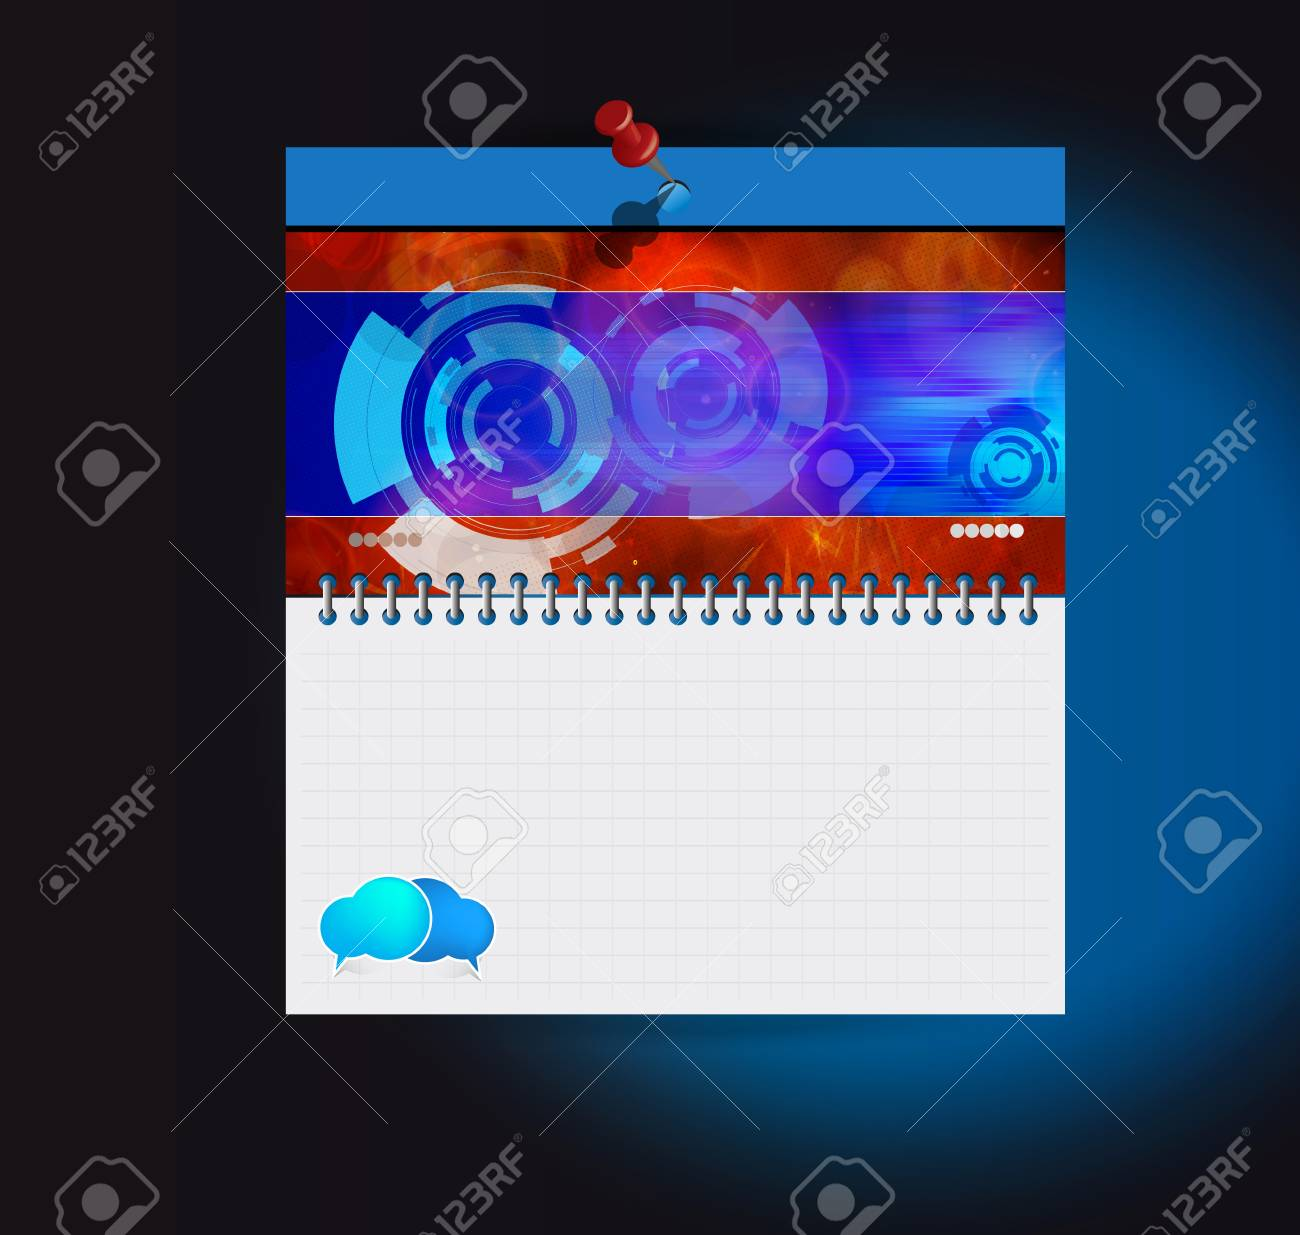 Organizer with technical background illustration Stock Vector - 16983078